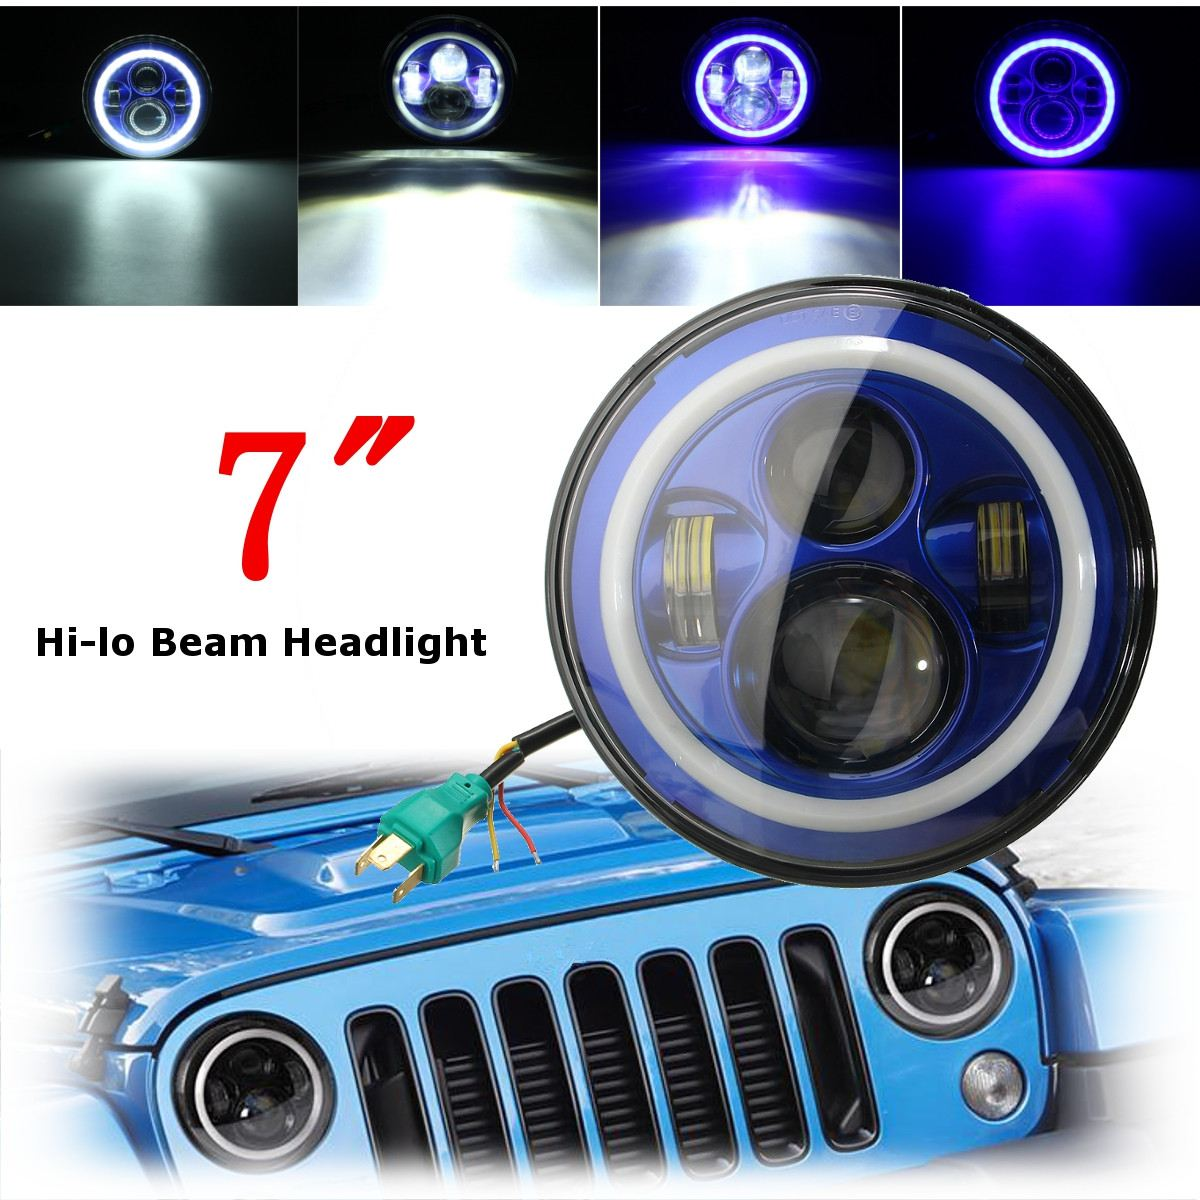 Enthusiastic 7inch 6000k Led Hi-lo Beam Headlight Halo Angle Eyes White Blue Turn Light For Jeep/wrangler Strengthening Waist And Sinews Car Lights